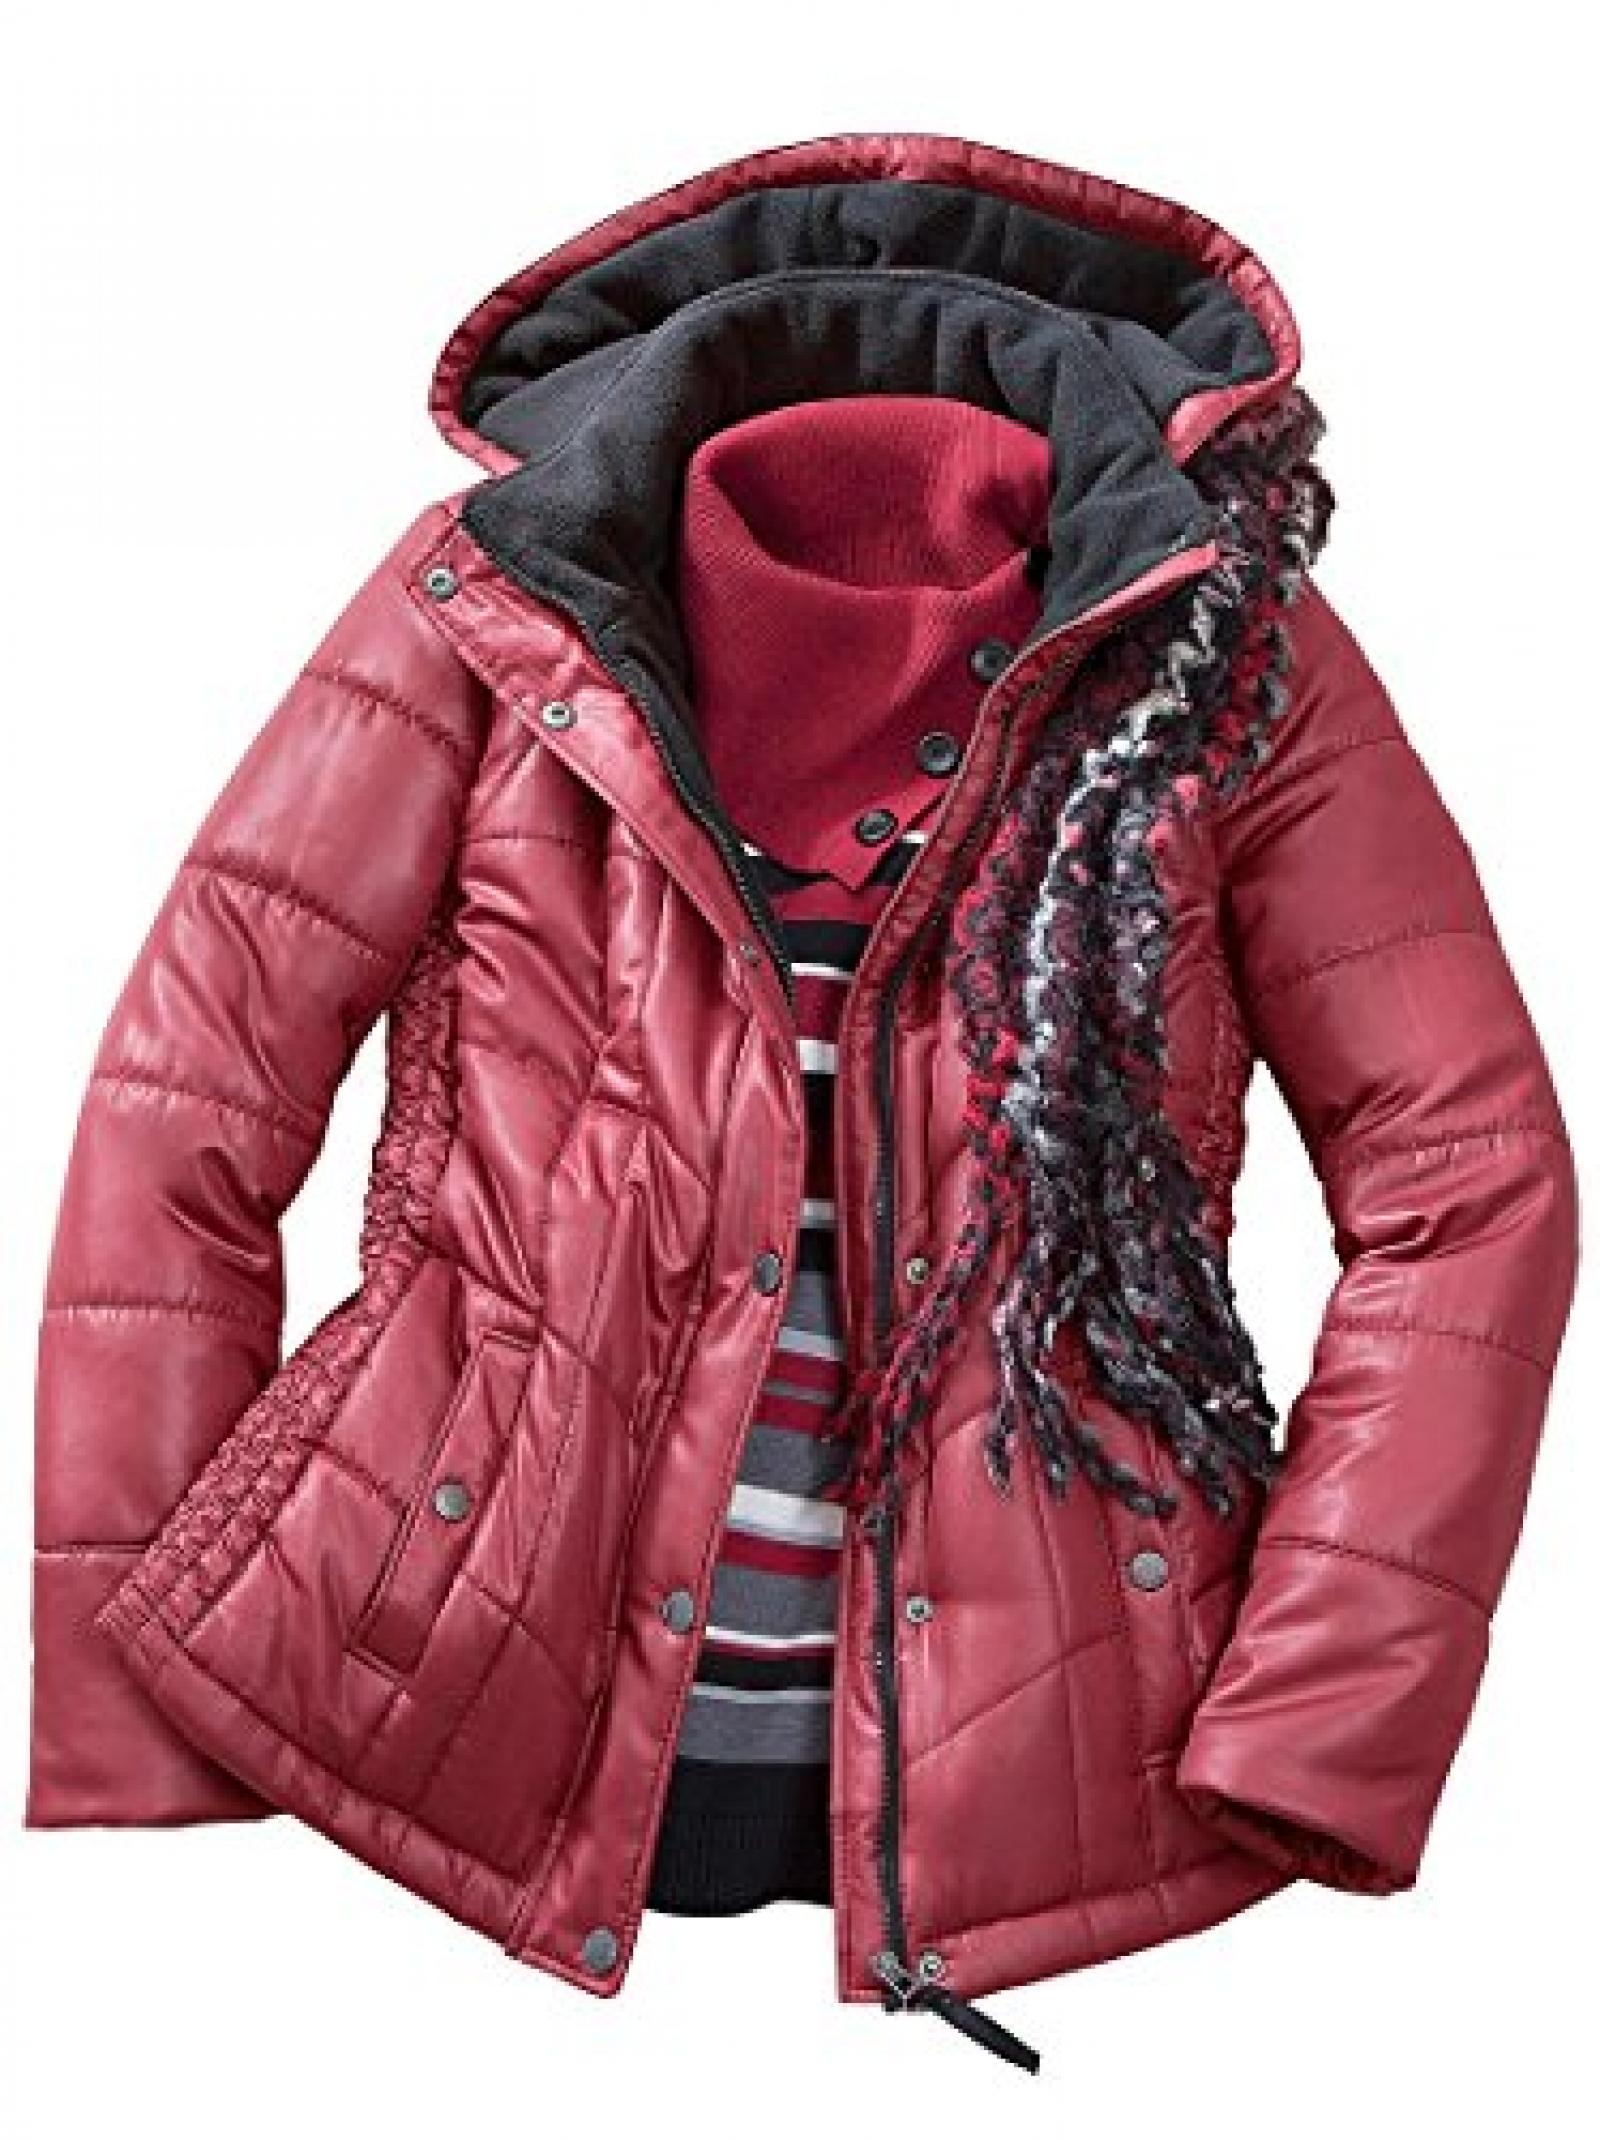 Collection L: Damen-Jacke - dunkelrot - 359306